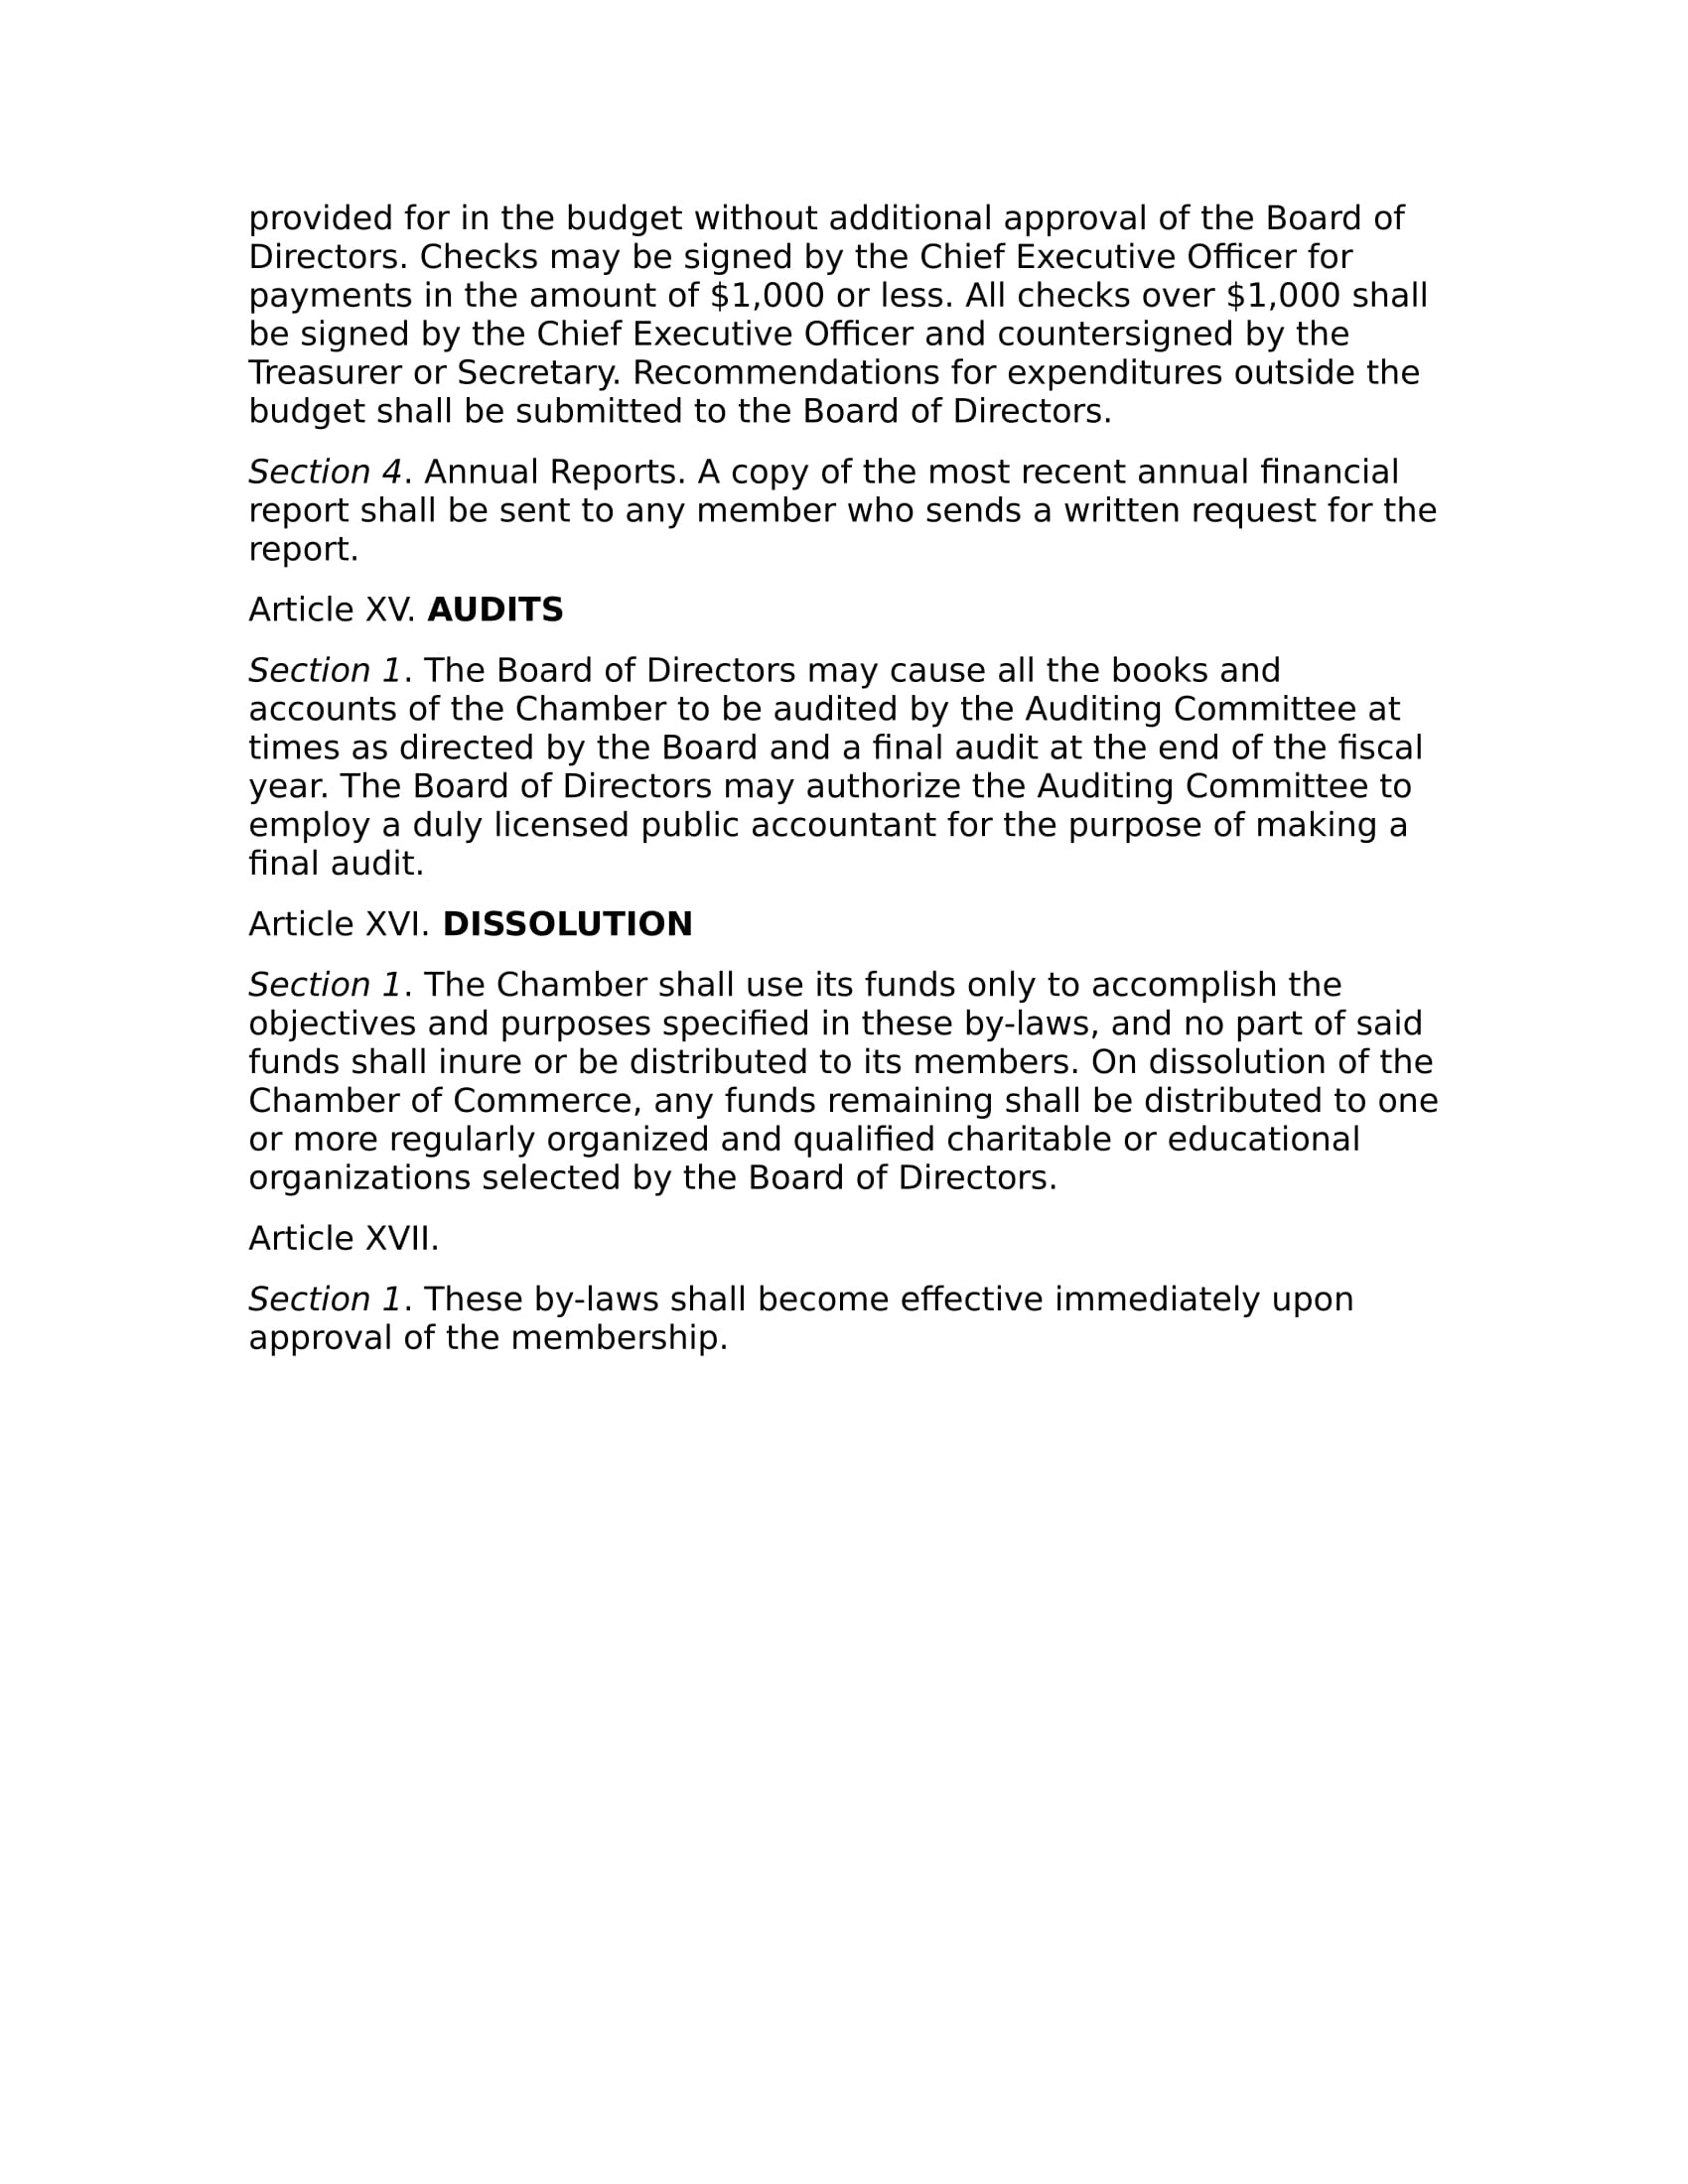 BY-LAWS-PAGE-9-jpeg.jpg